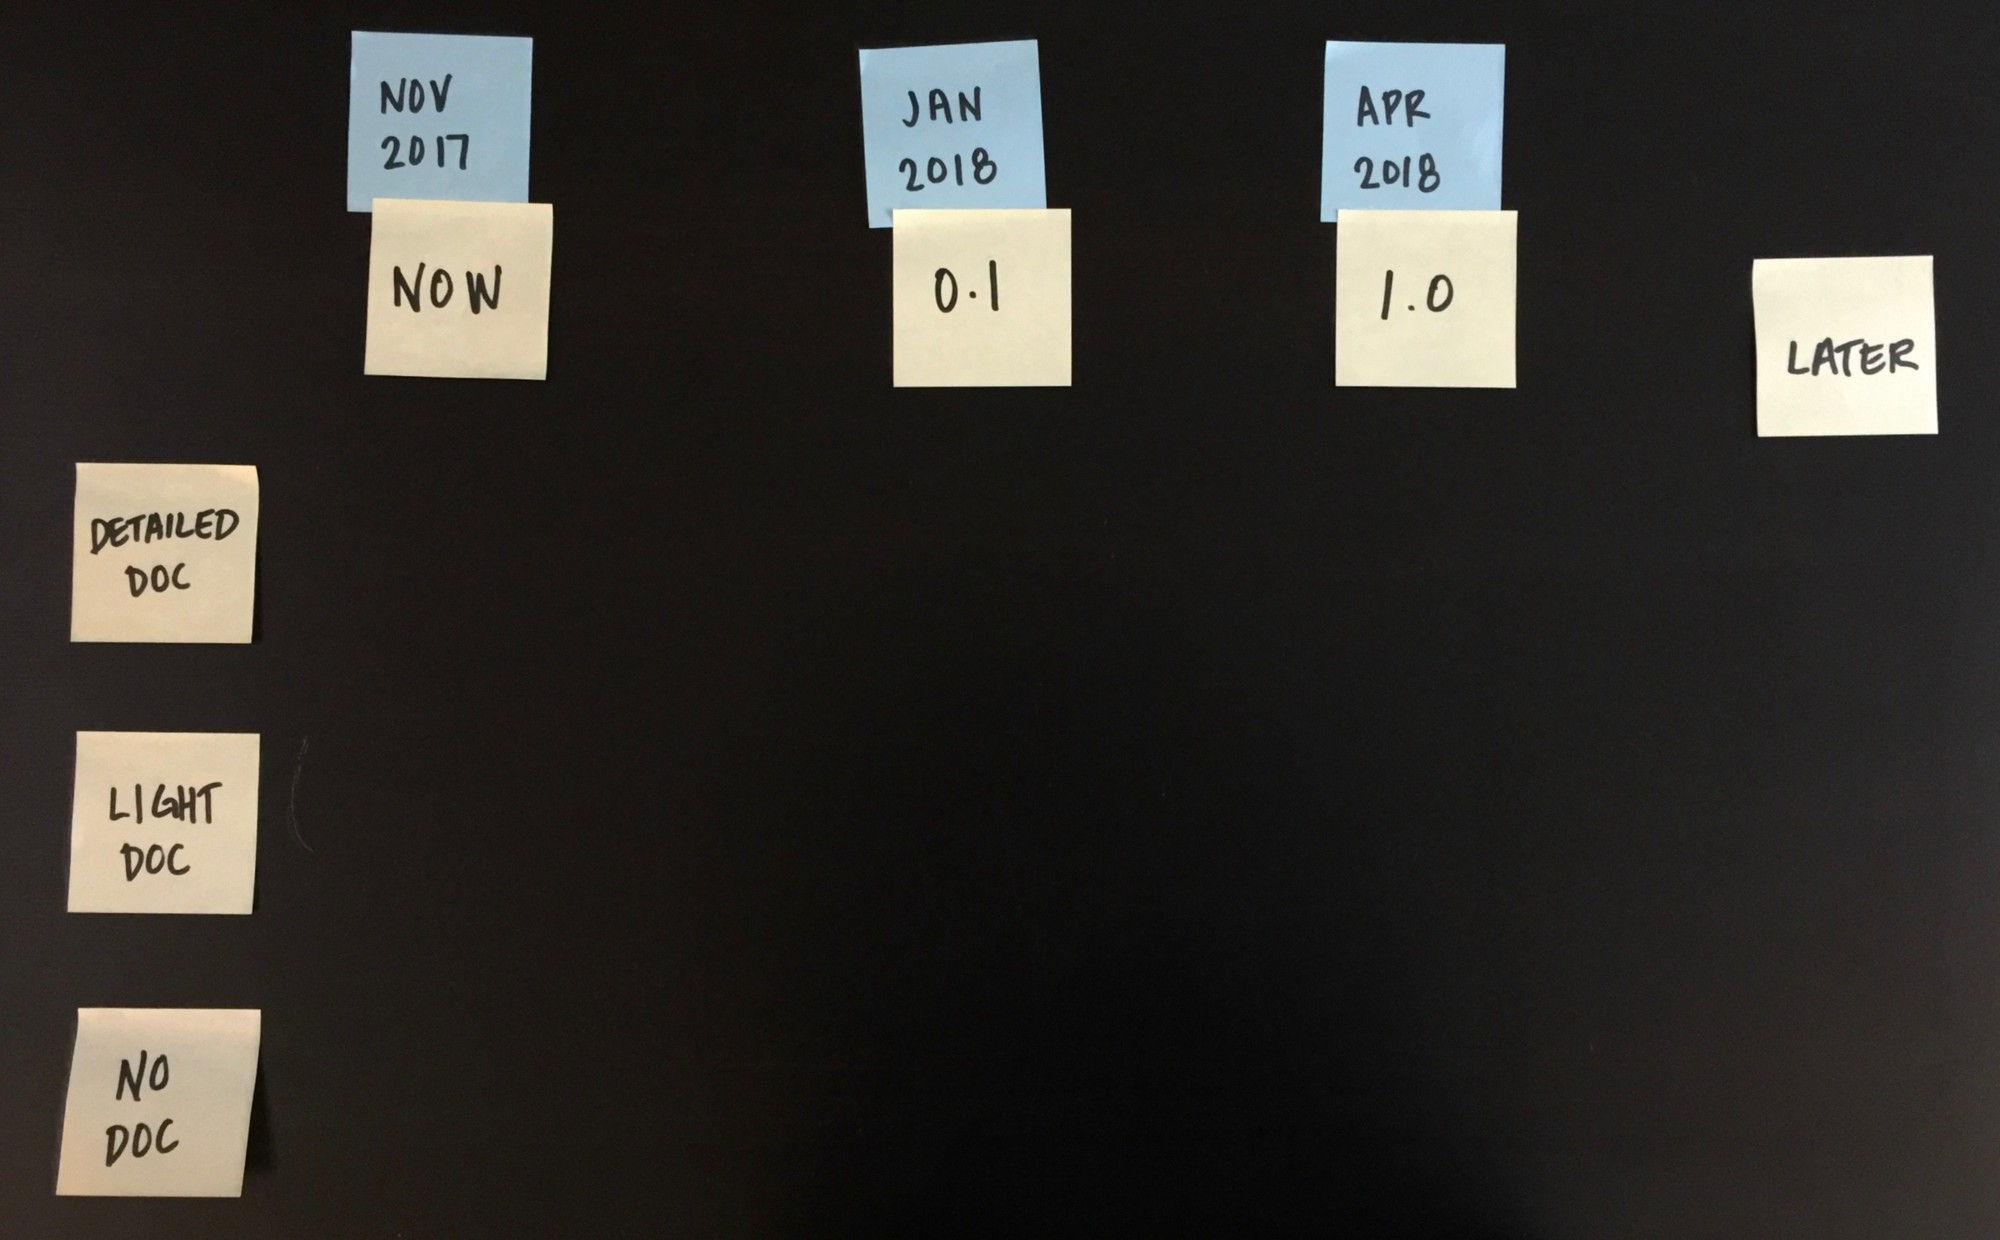 Photo of post it notes arranged to create a grid of milestones versus documentation detail levels